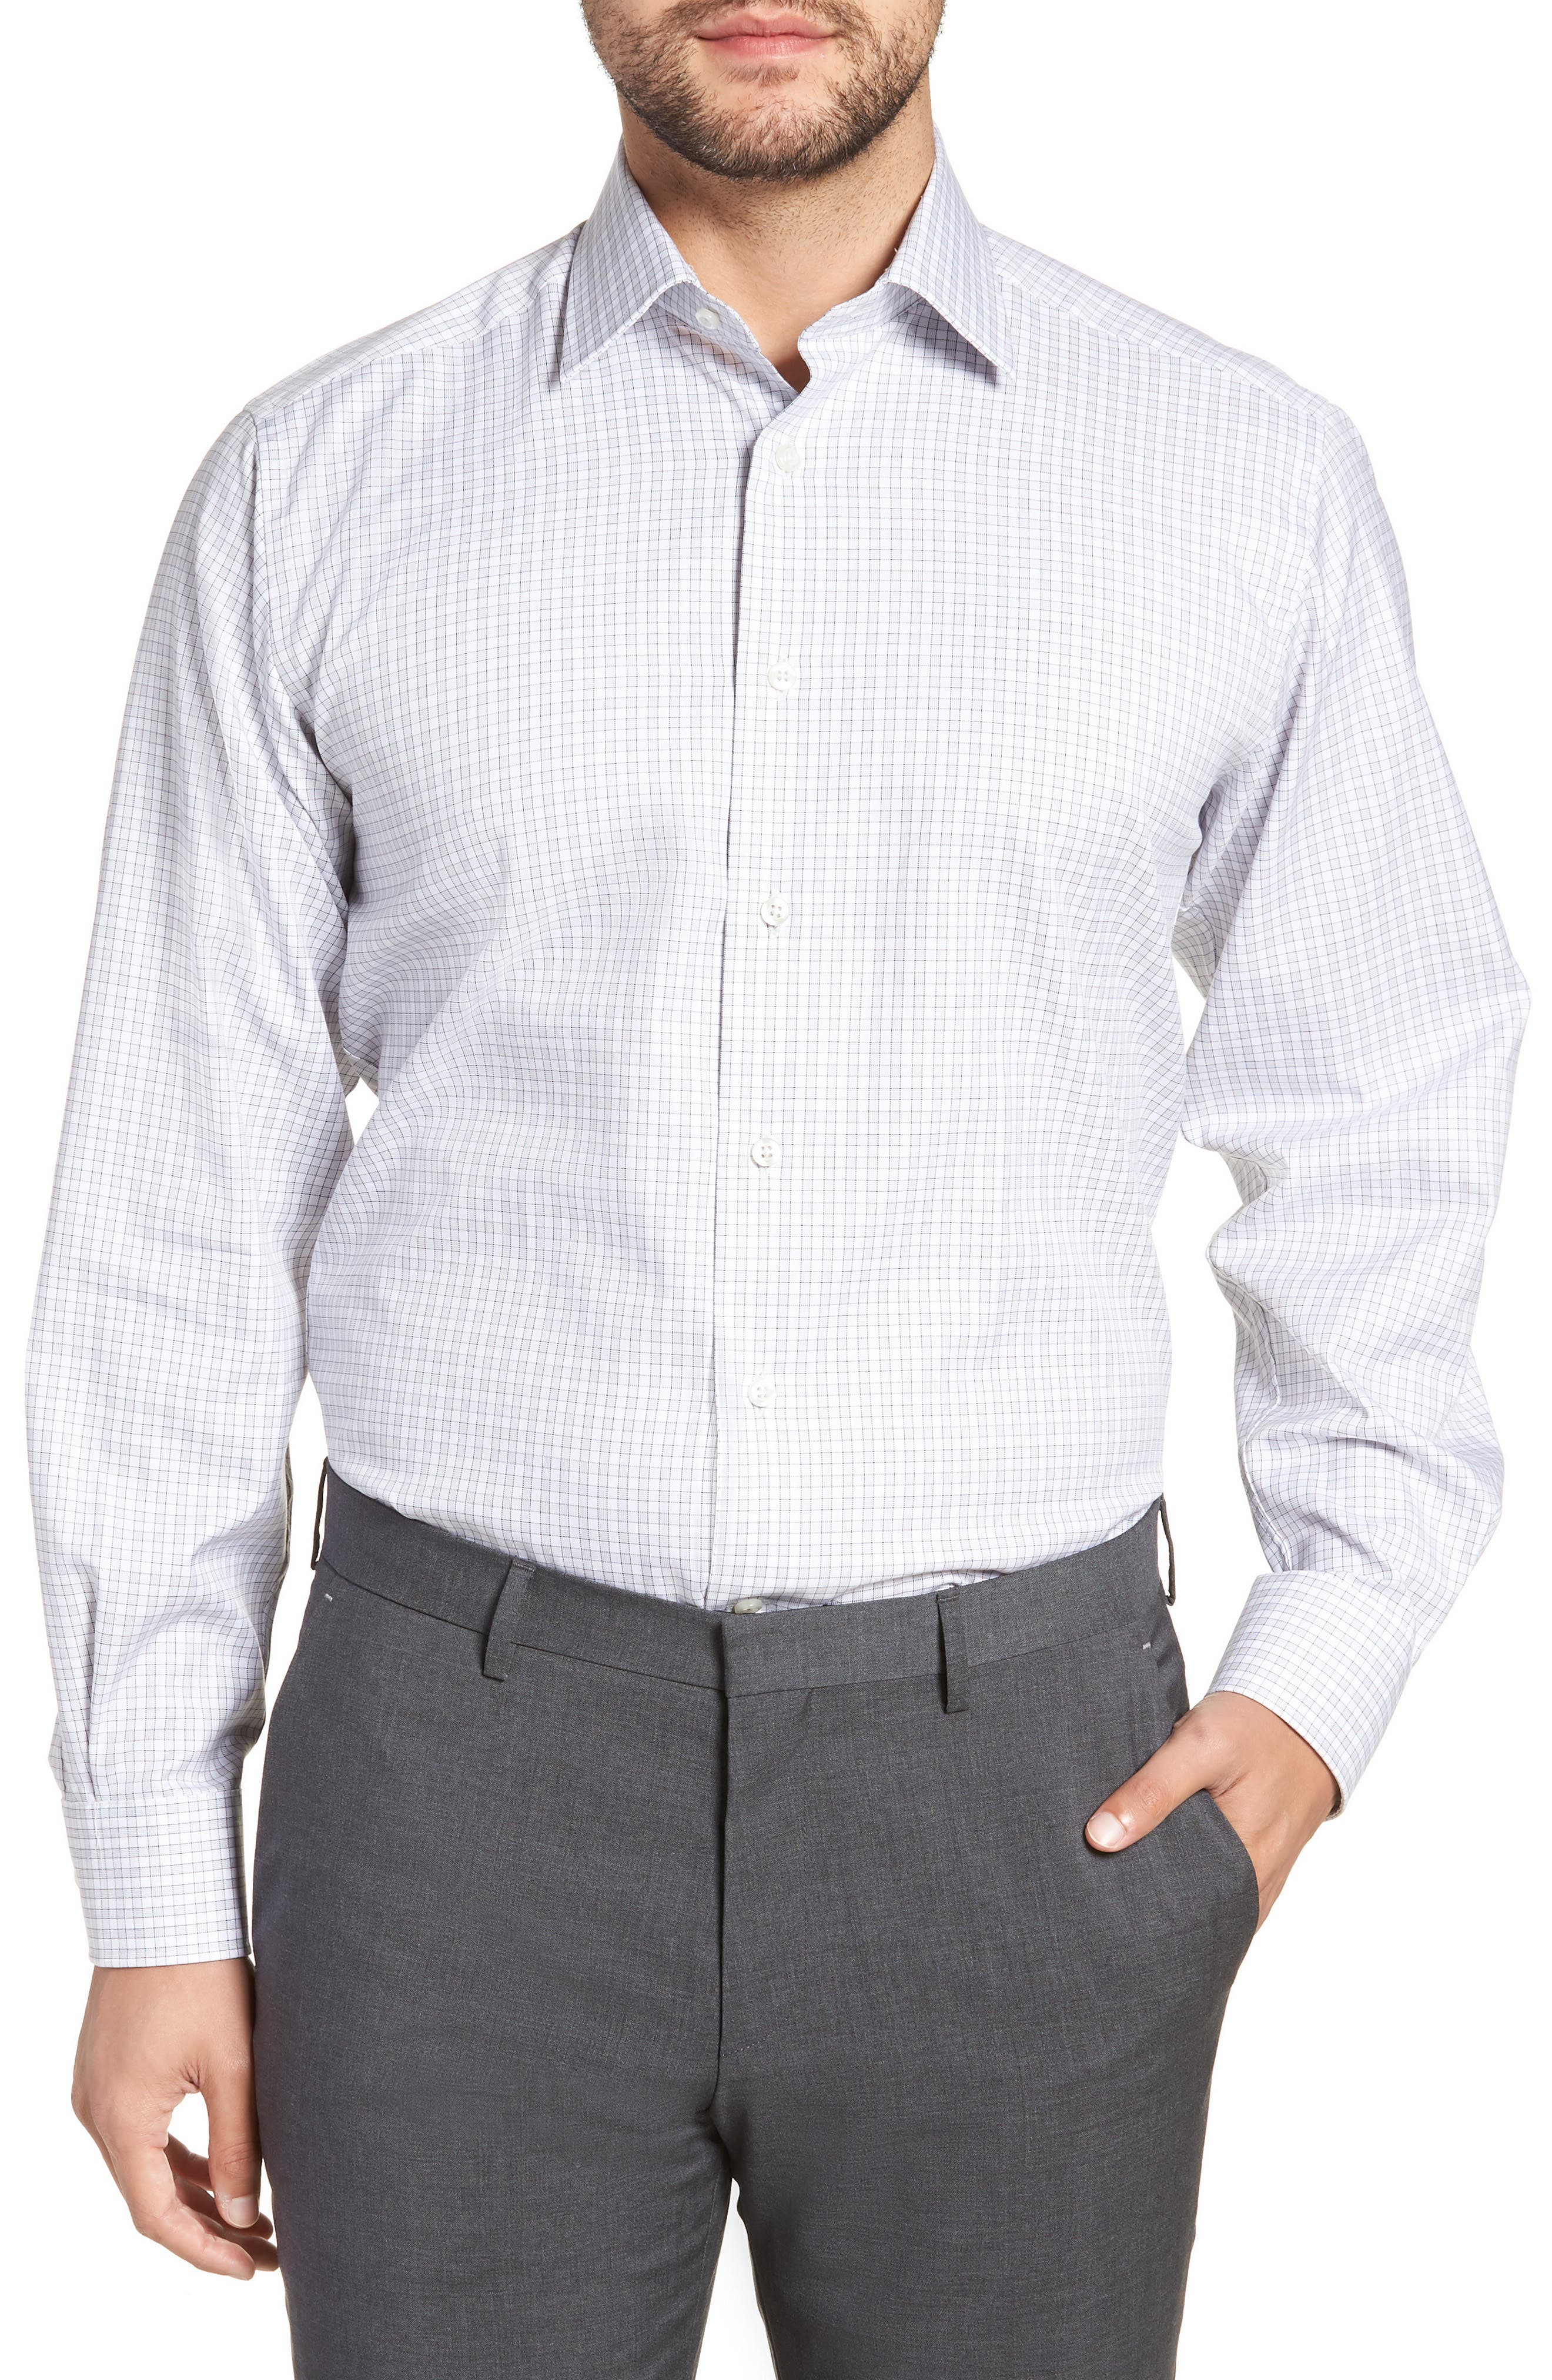 Regular Fit Check Dress Shirt,                             Main thumbnail 1, color,                             GRAY